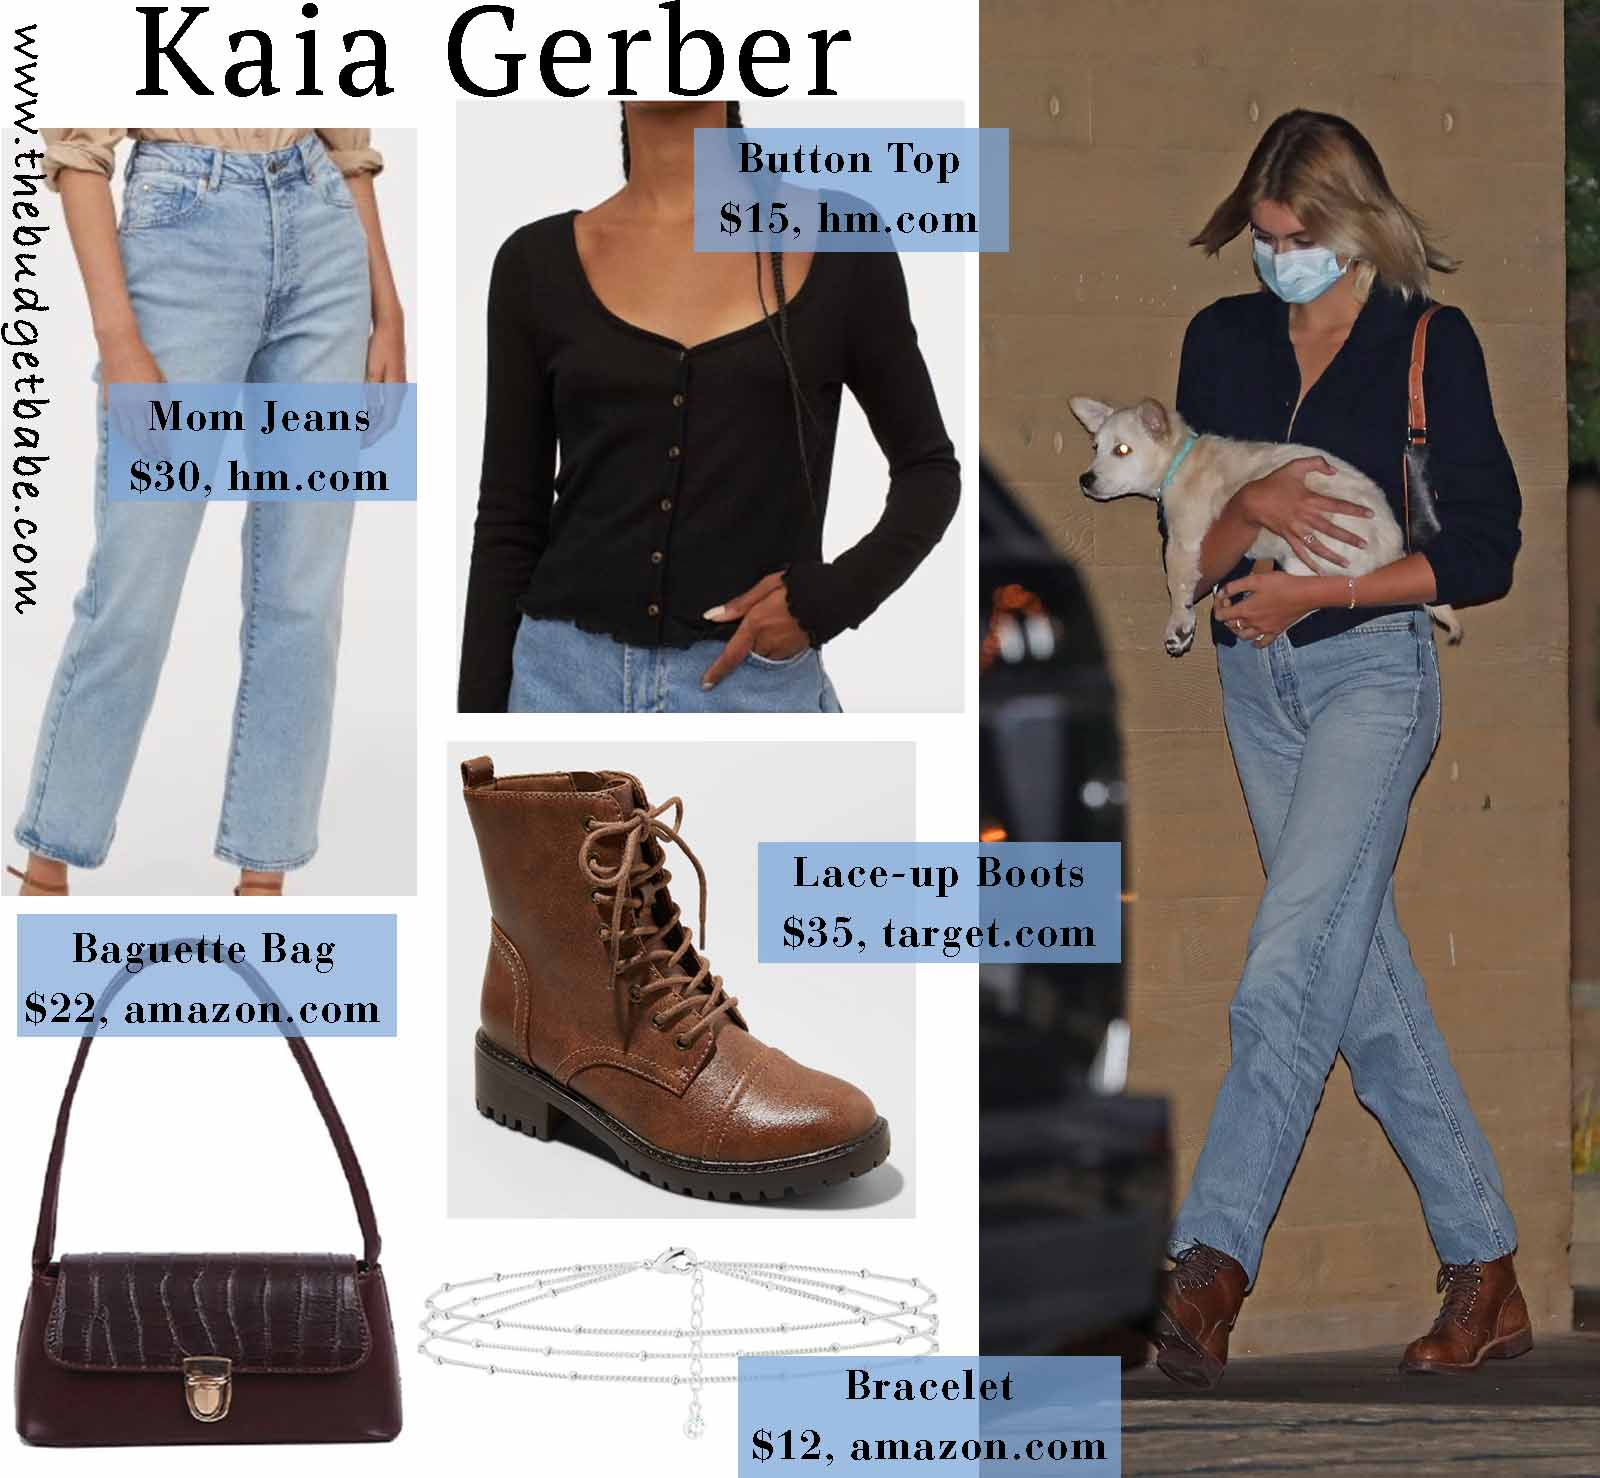 Kaia Gerber is chic in 90's style